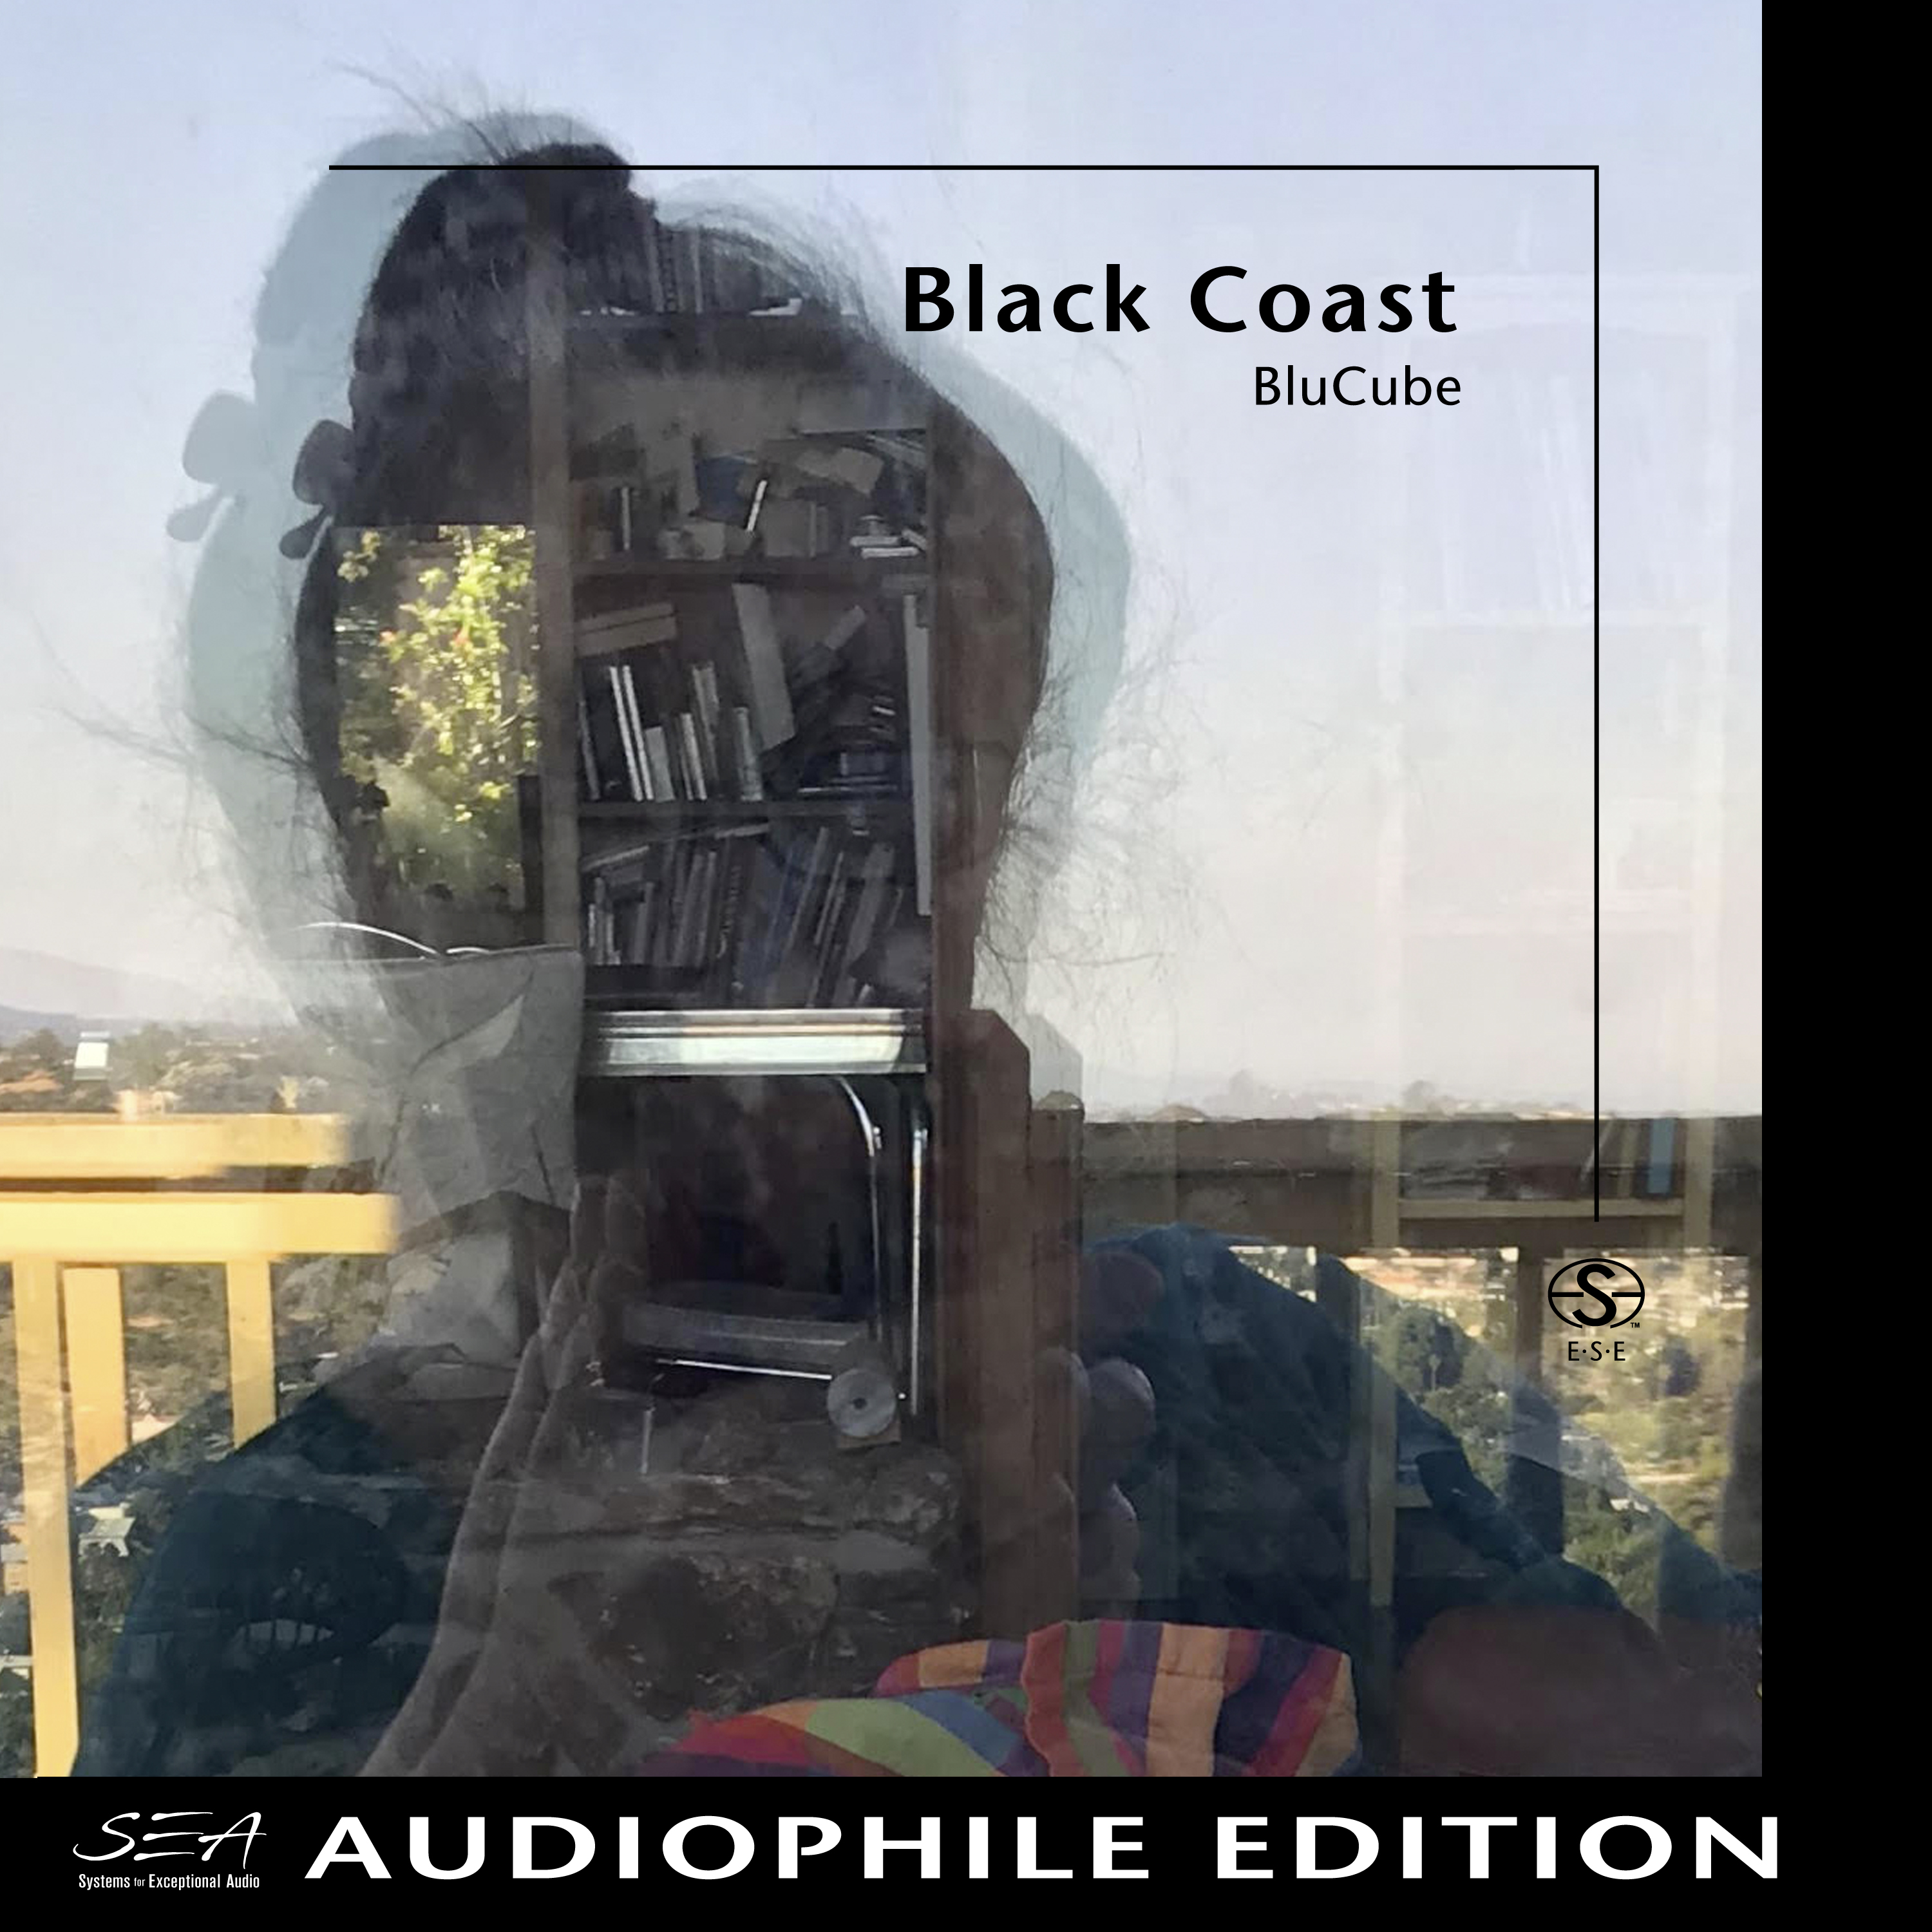 BluCube - Black Coast - Cover Image